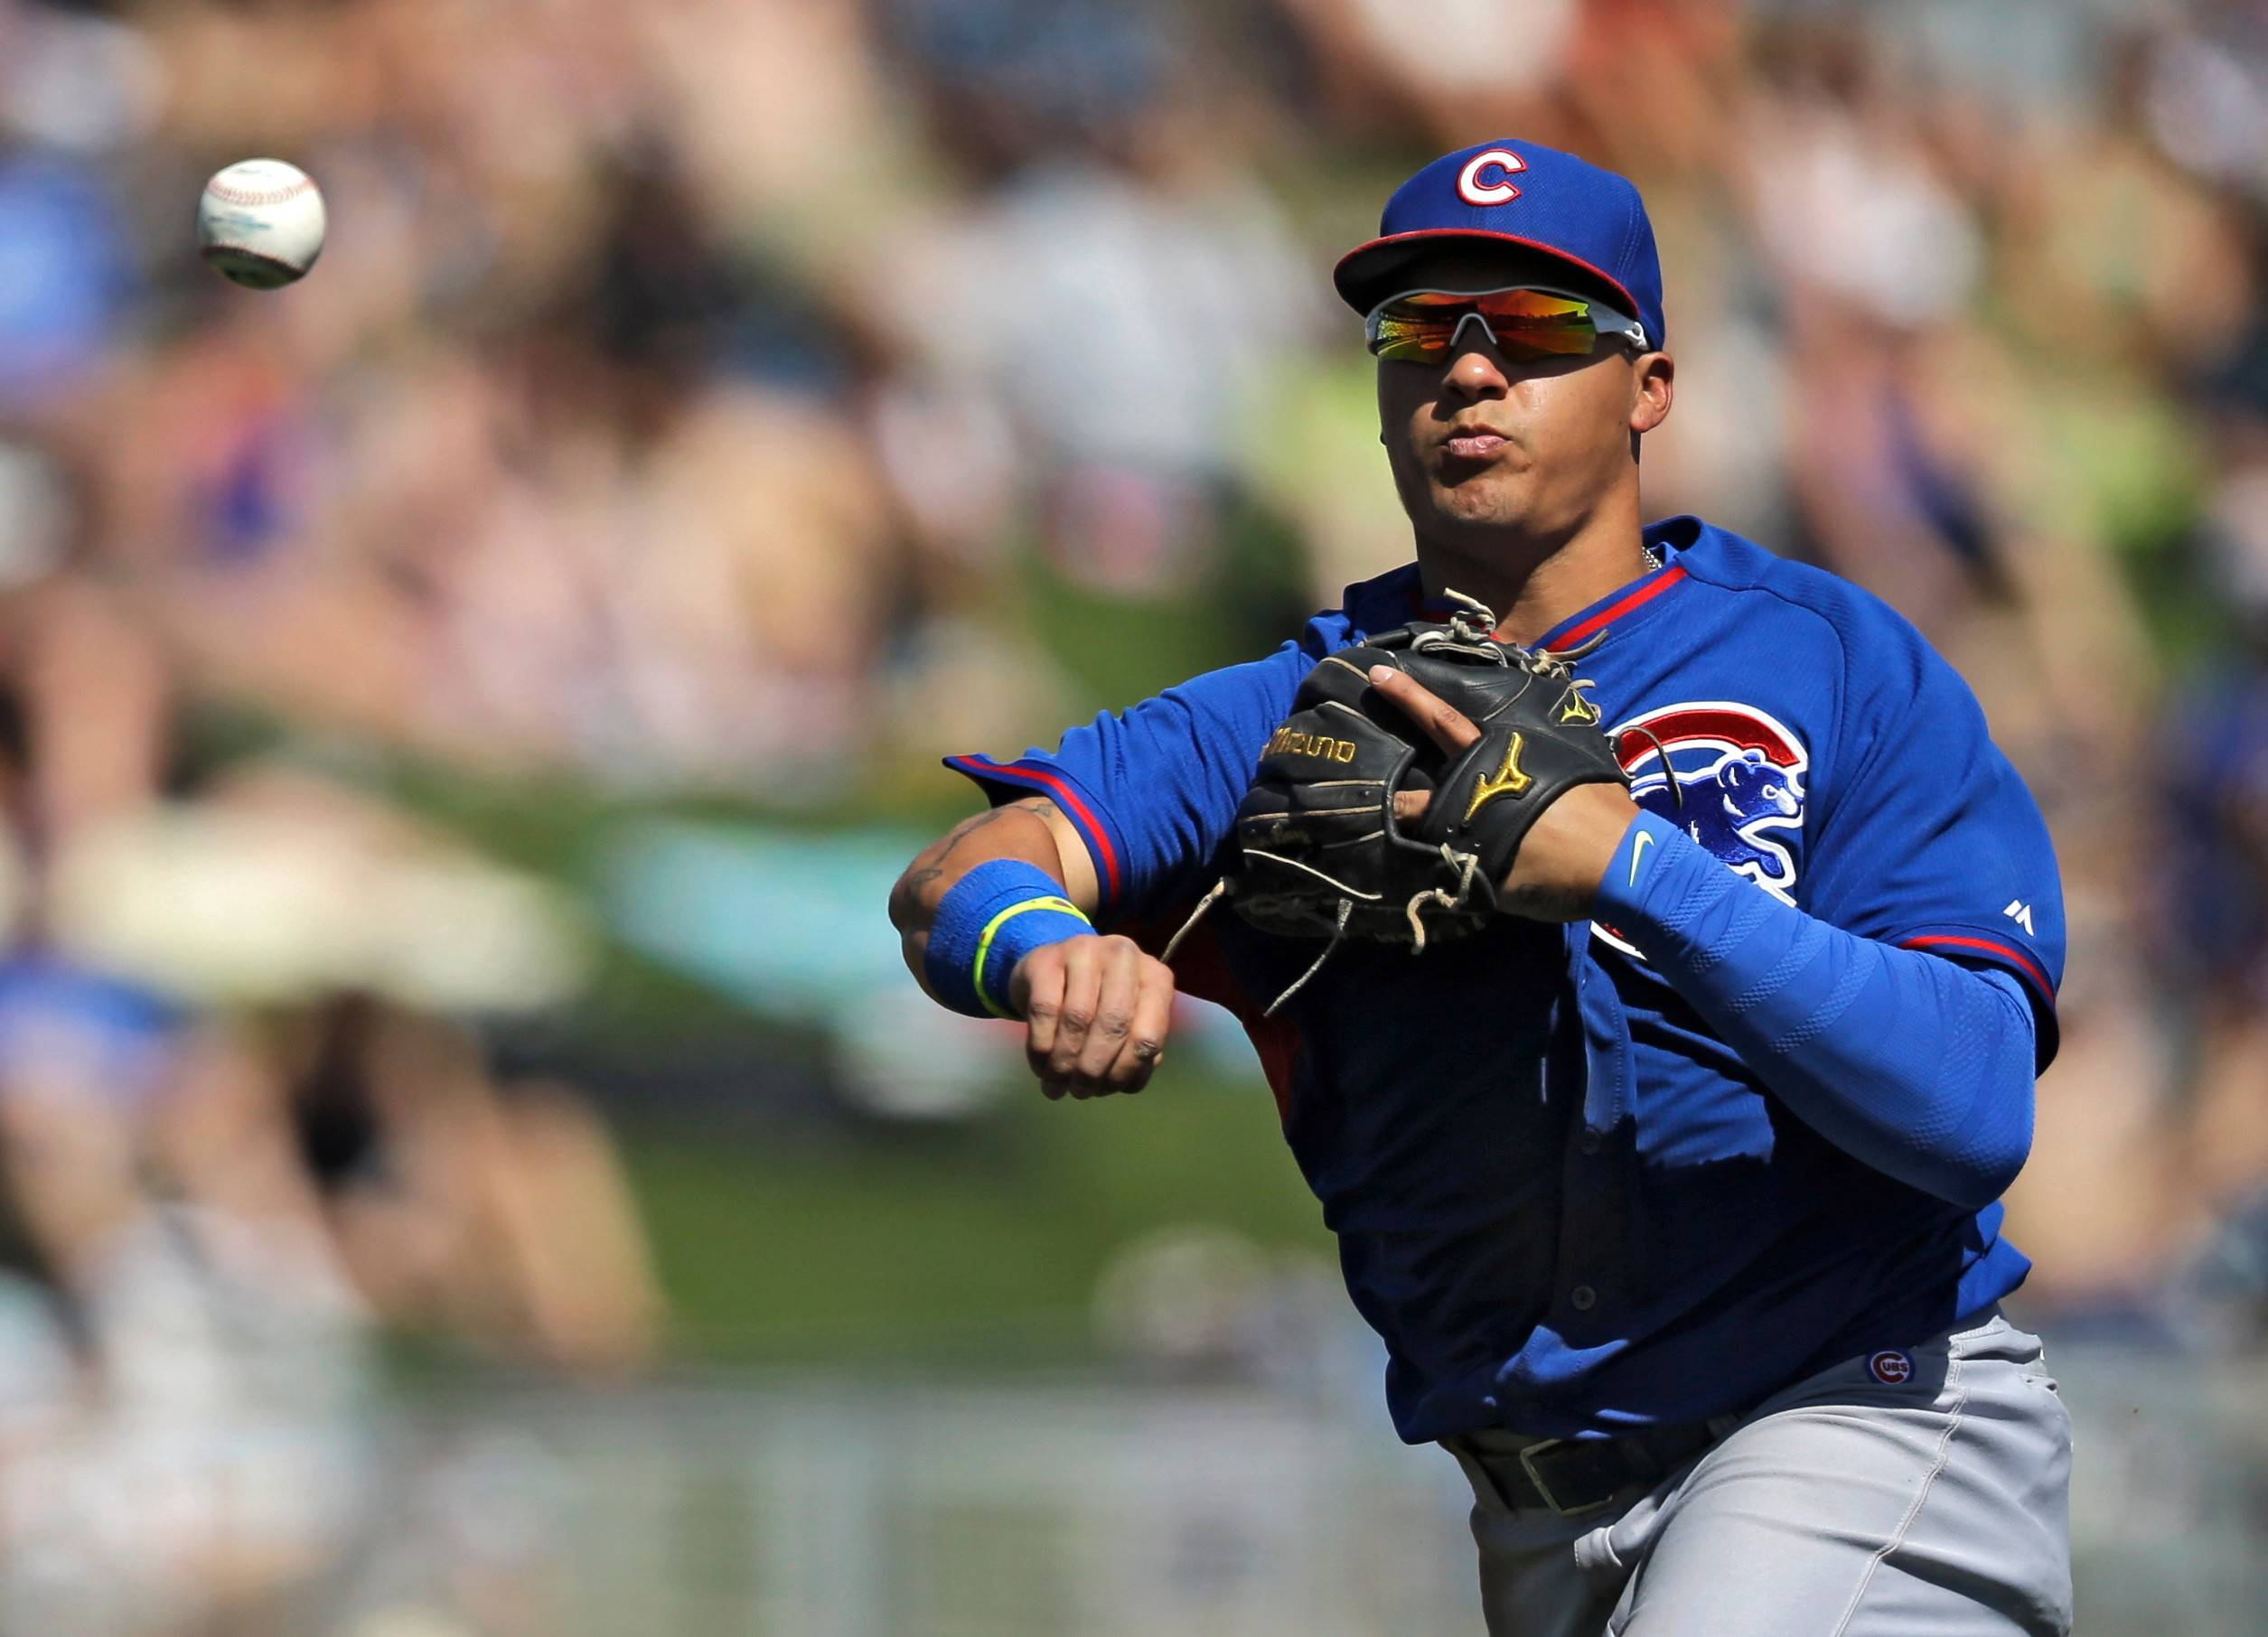 Highly touted prospect Baez to join Cubs